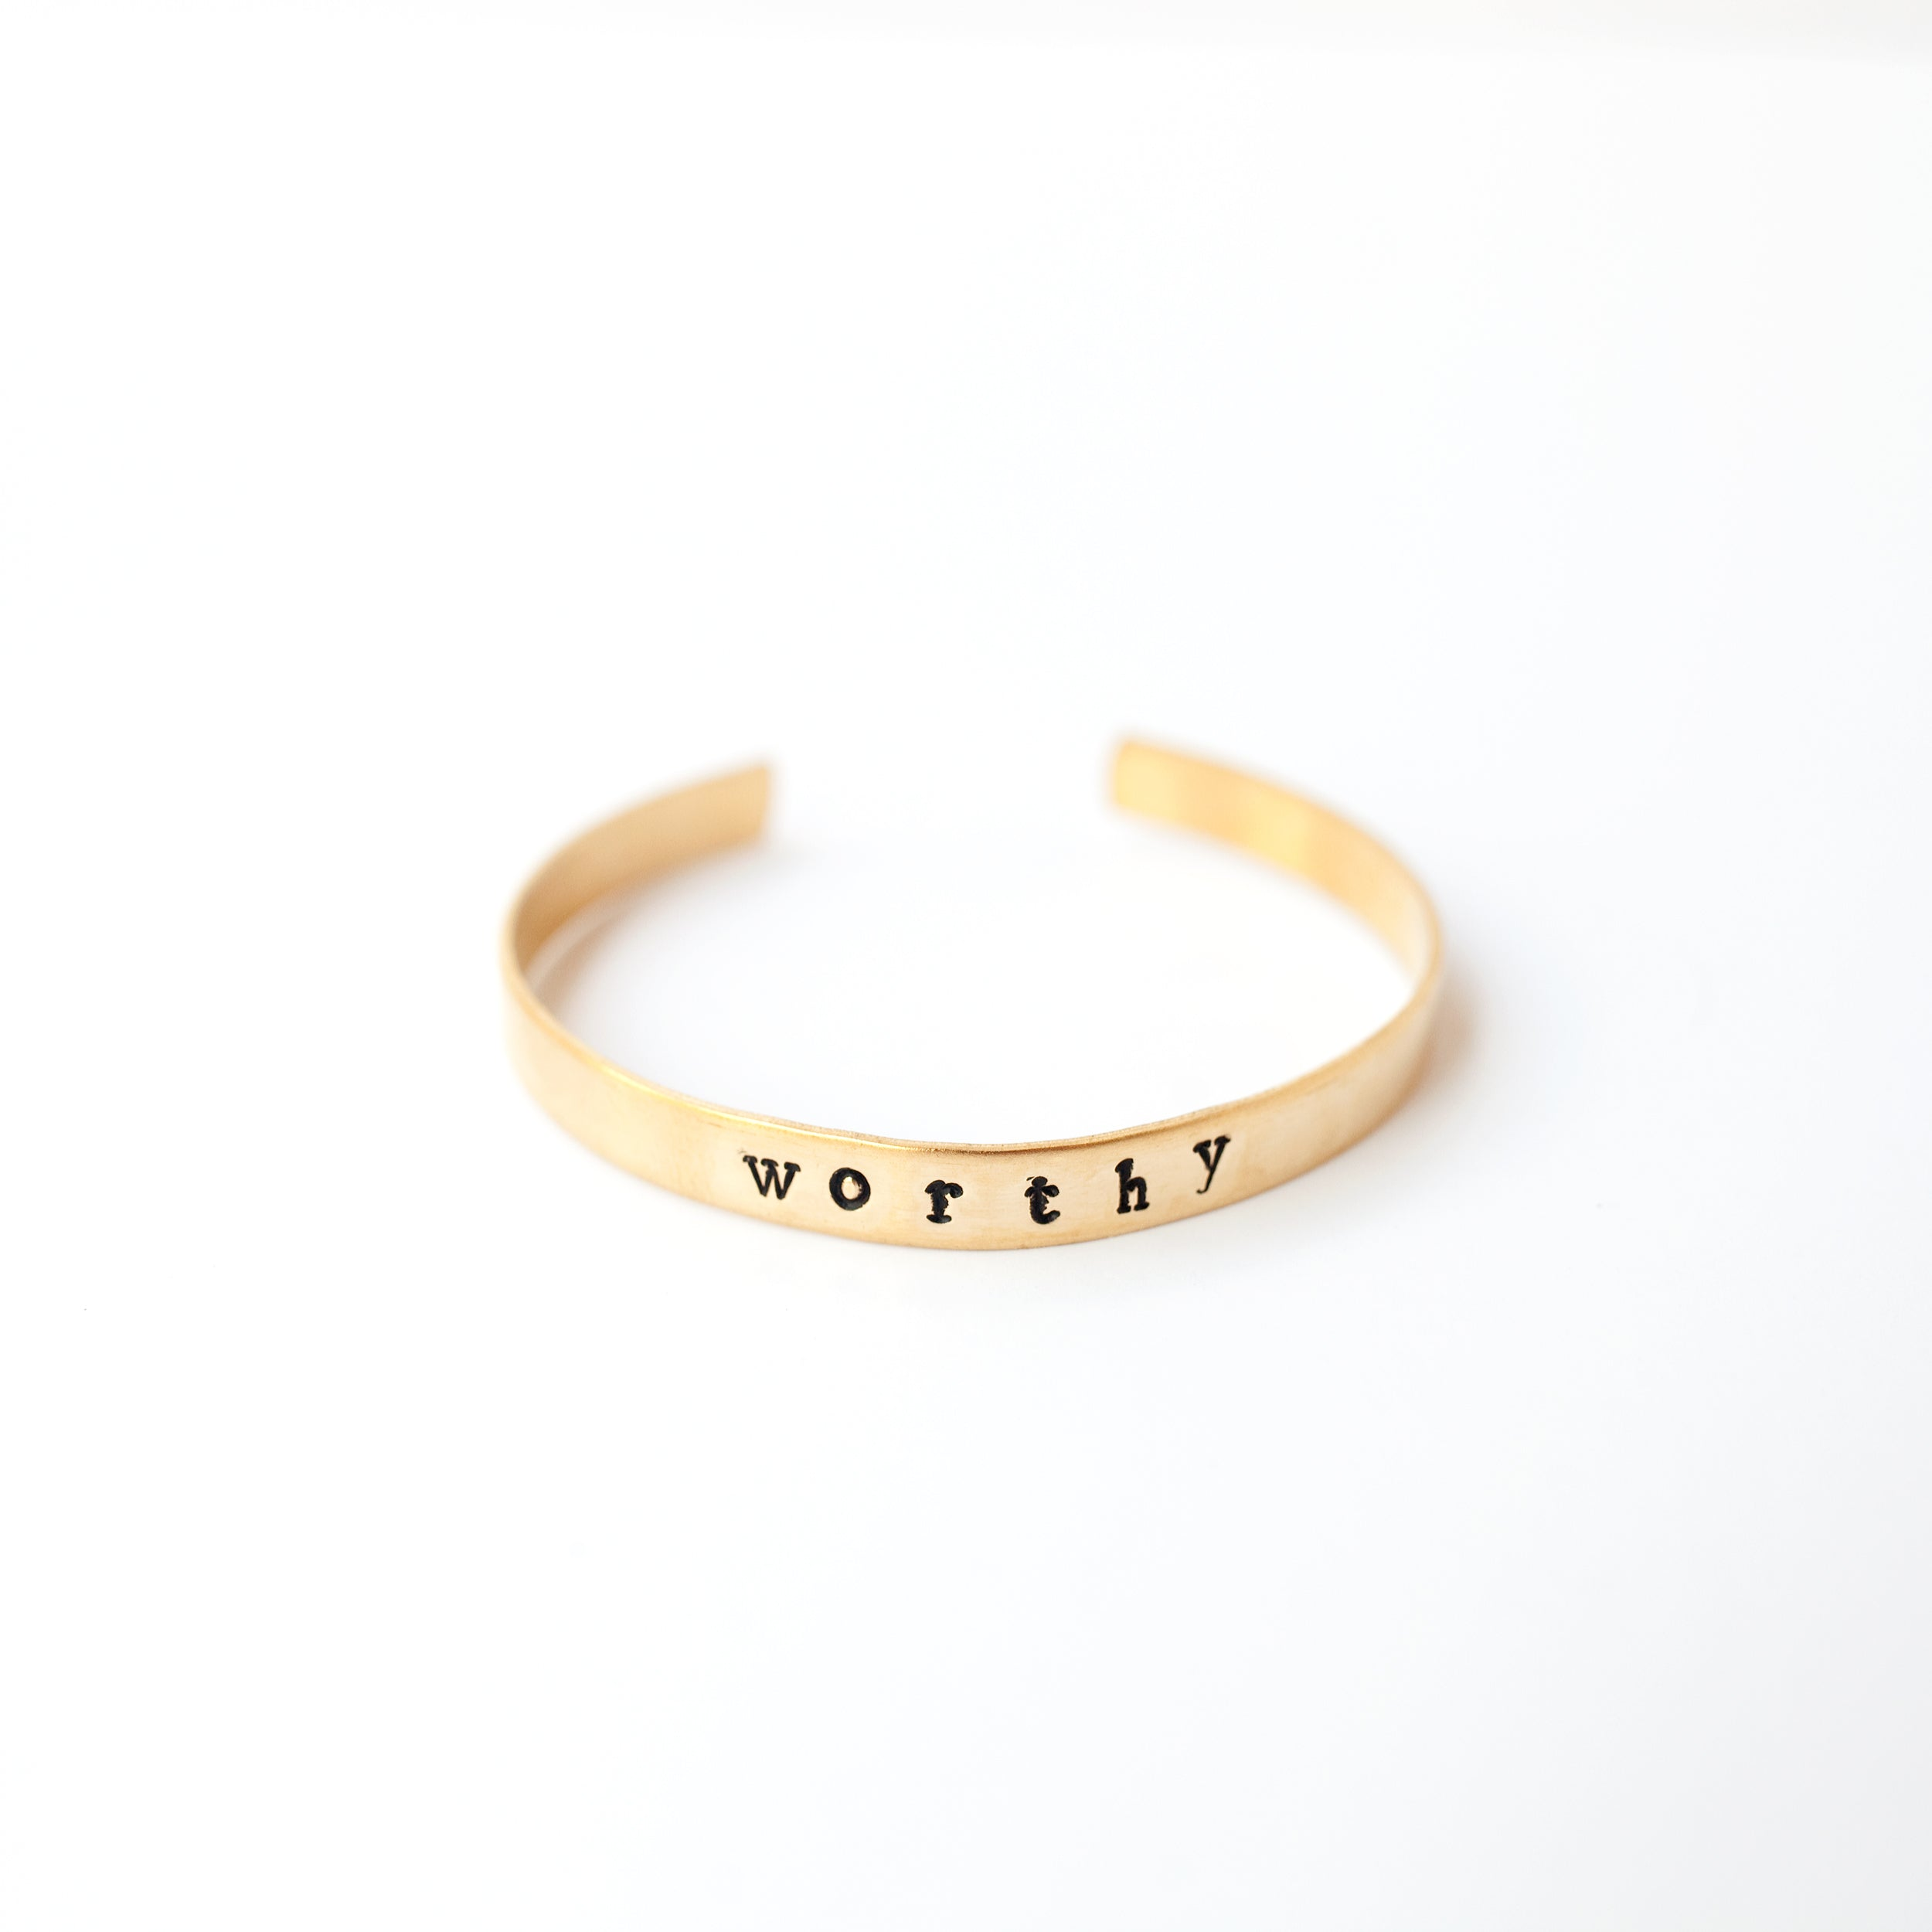 Stamped Brass Cuff - worthy - Newport Edge